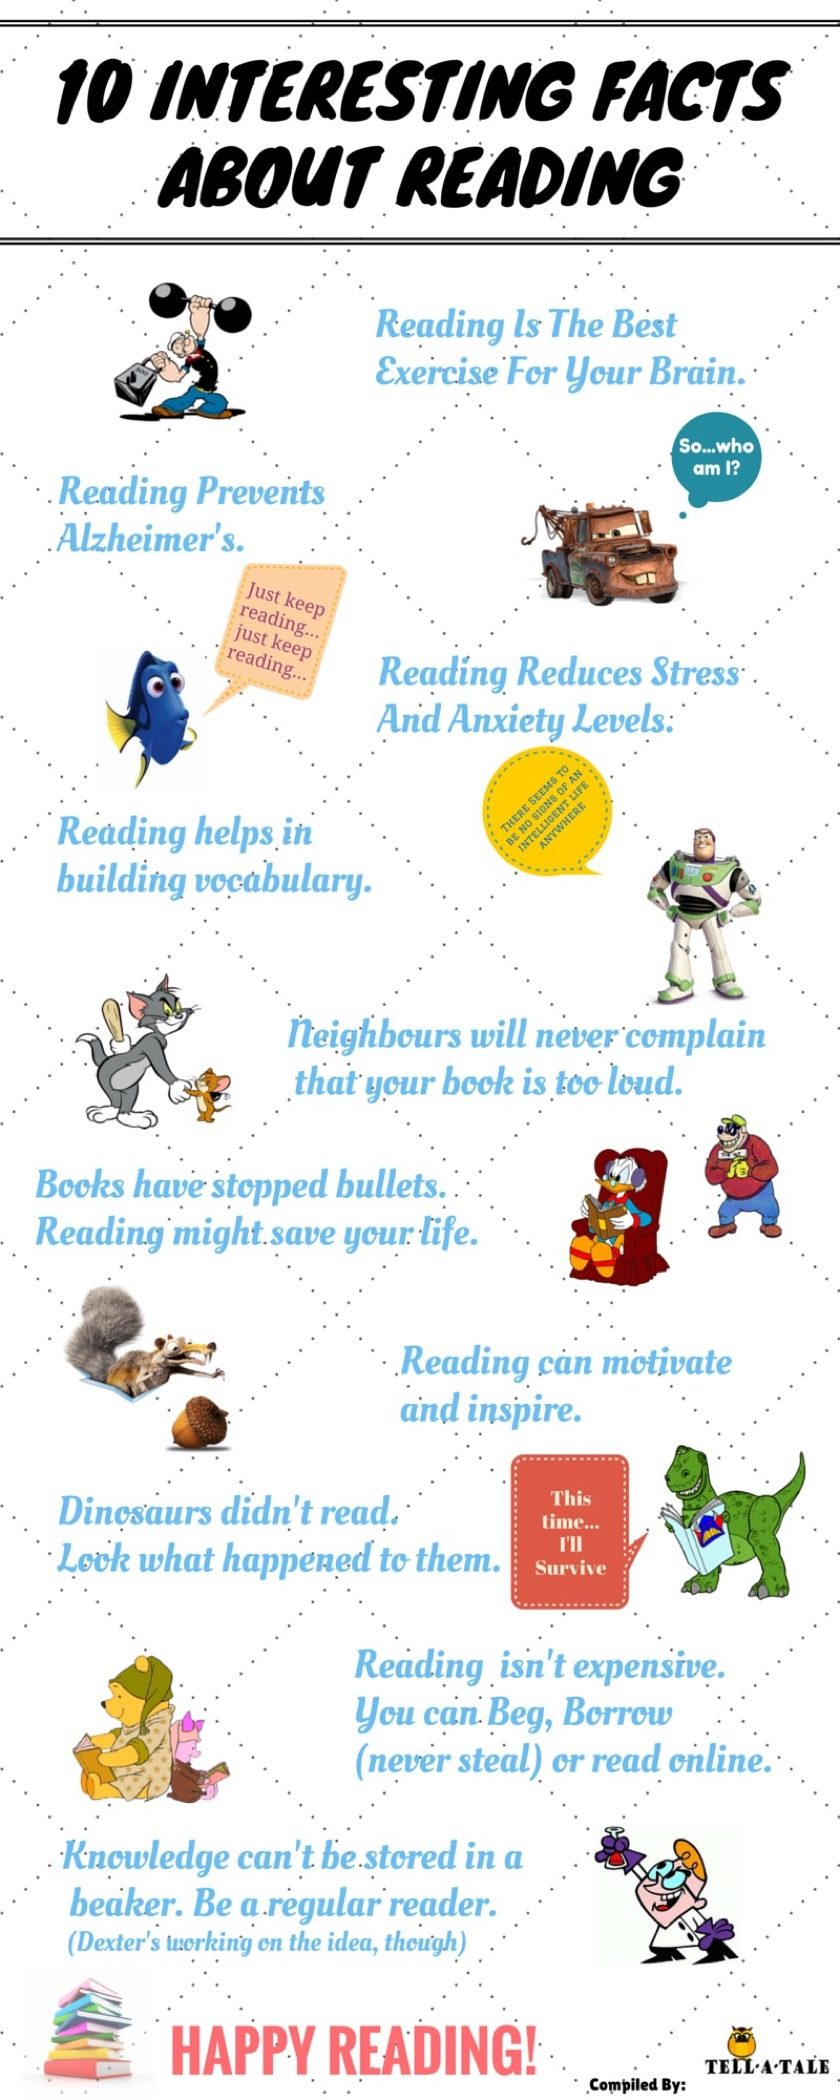 Interesting facts about reading - full infographic